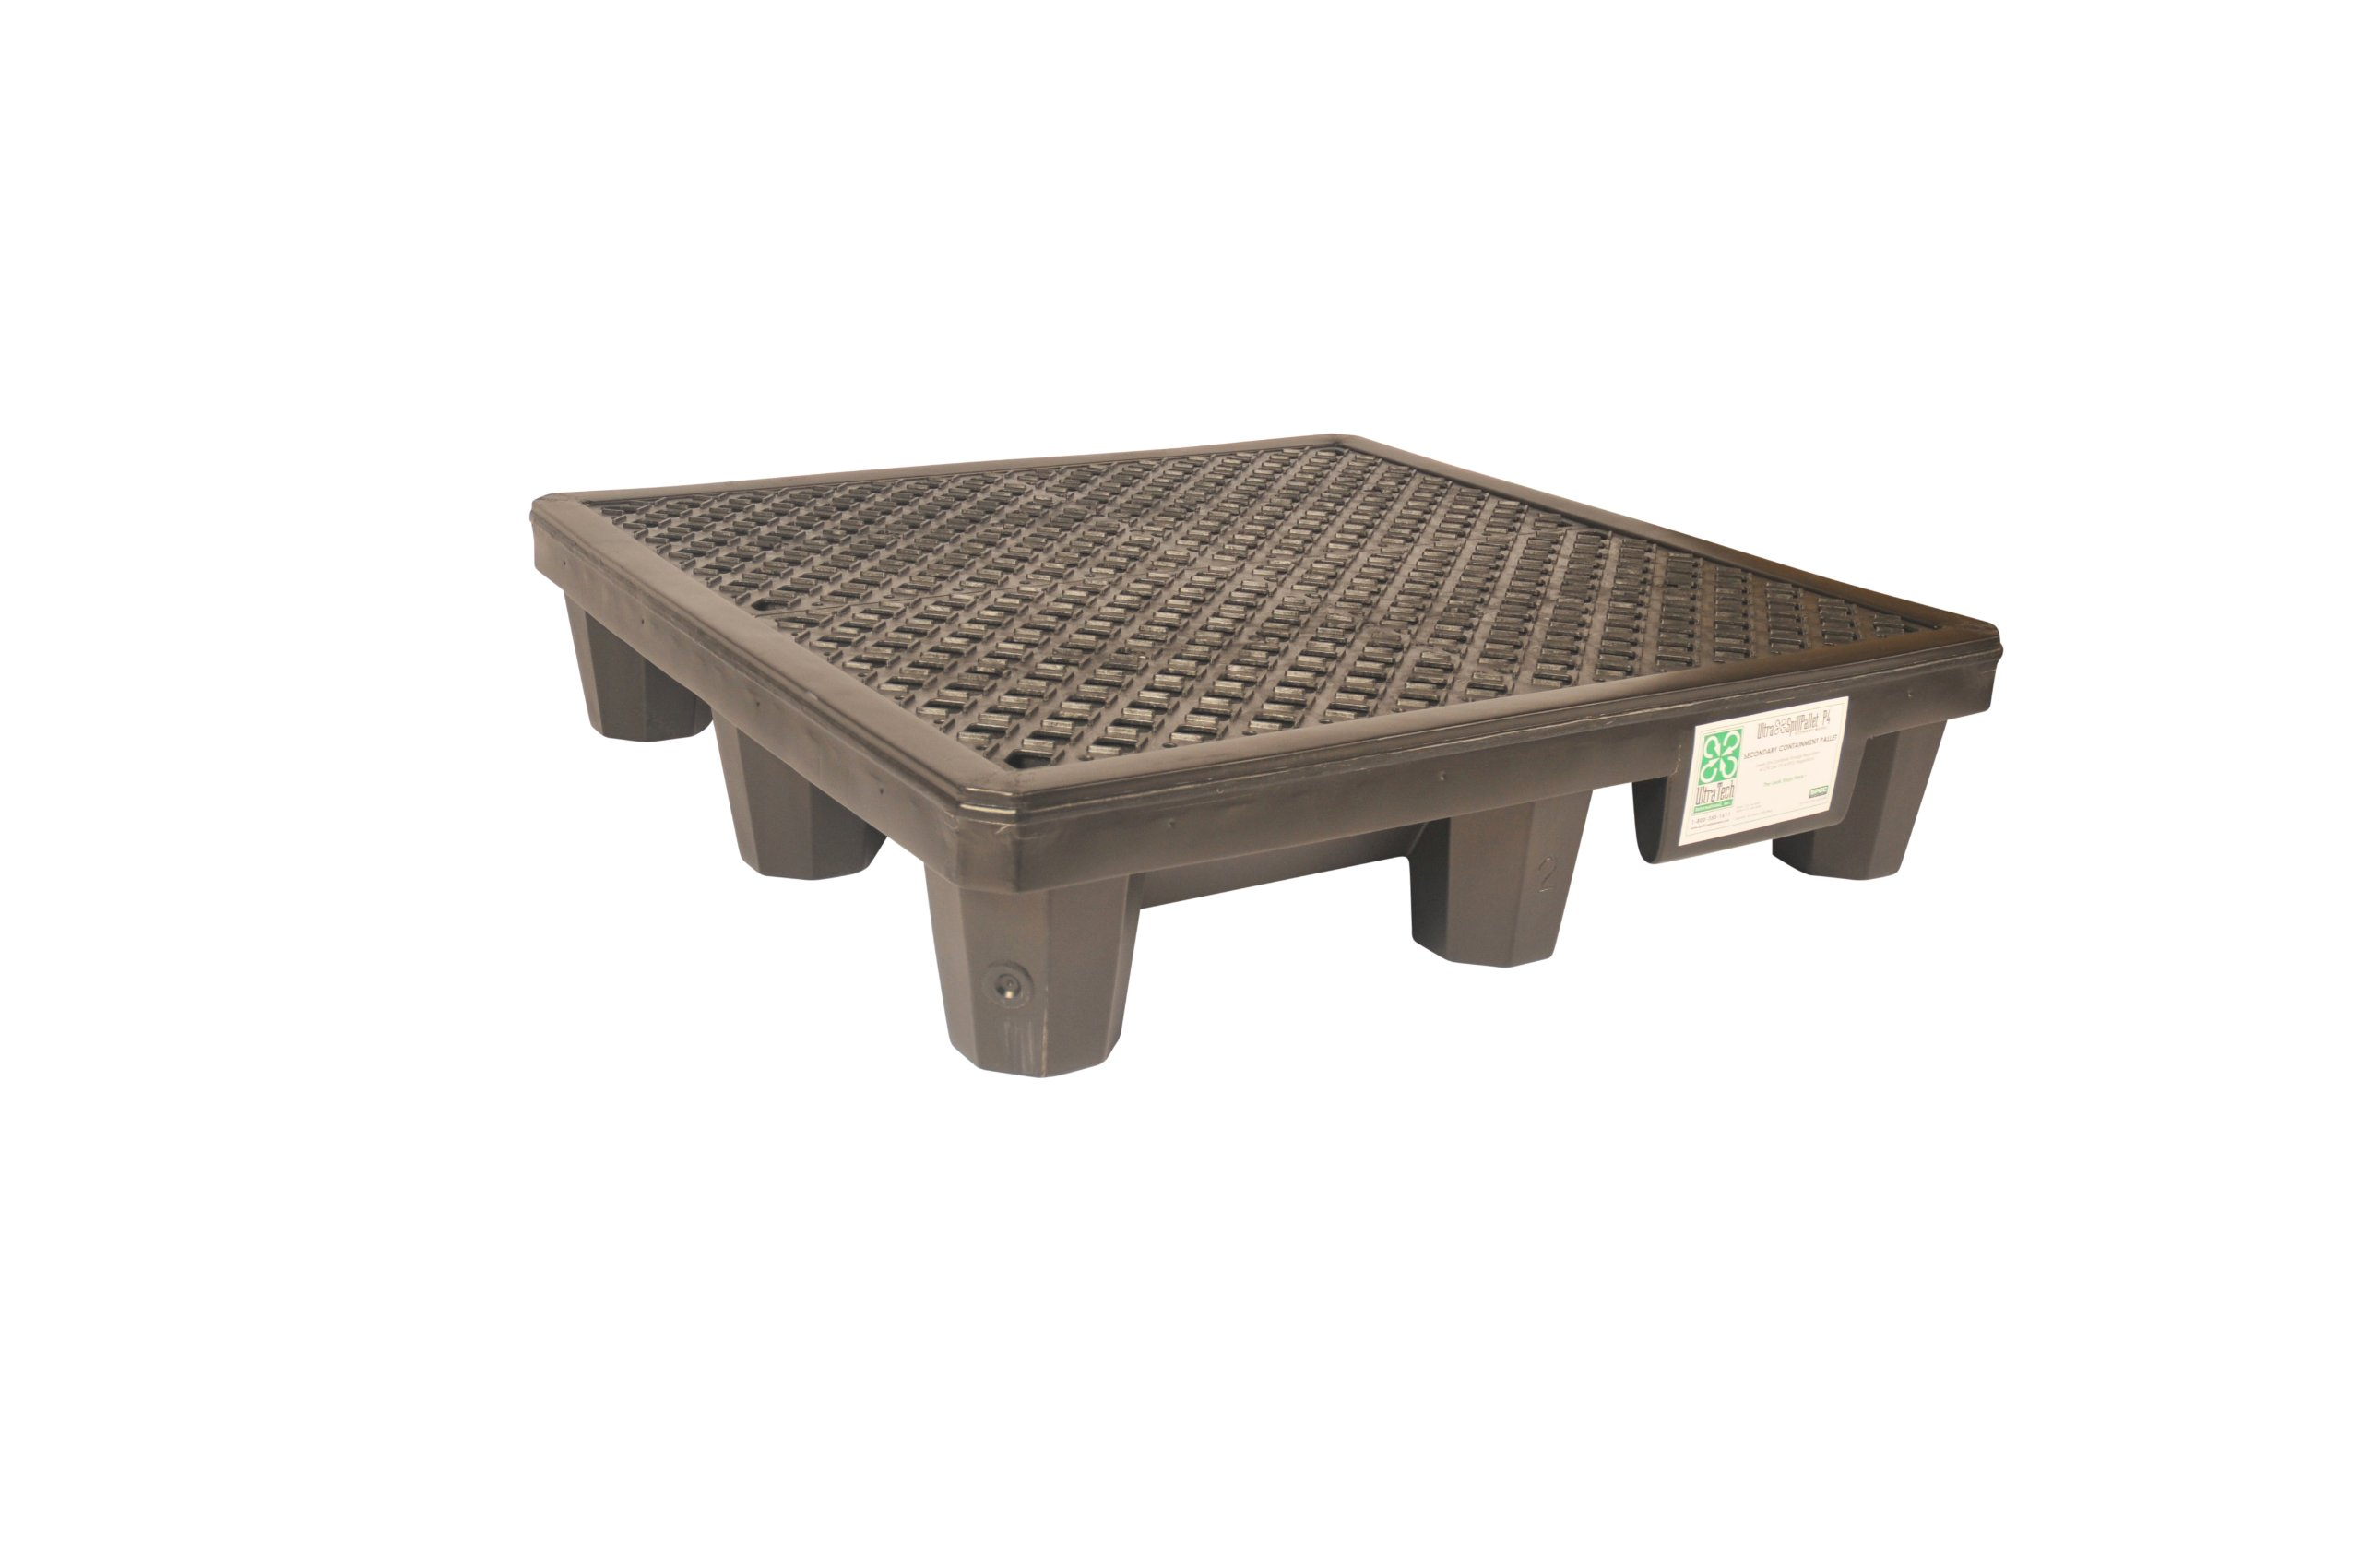 UltraTech 1112 Recycled Polyethylene P4 4-Drum Ultra-Spill Pallet, 3000 lbs Capacity, 5 Year Warranty, Black